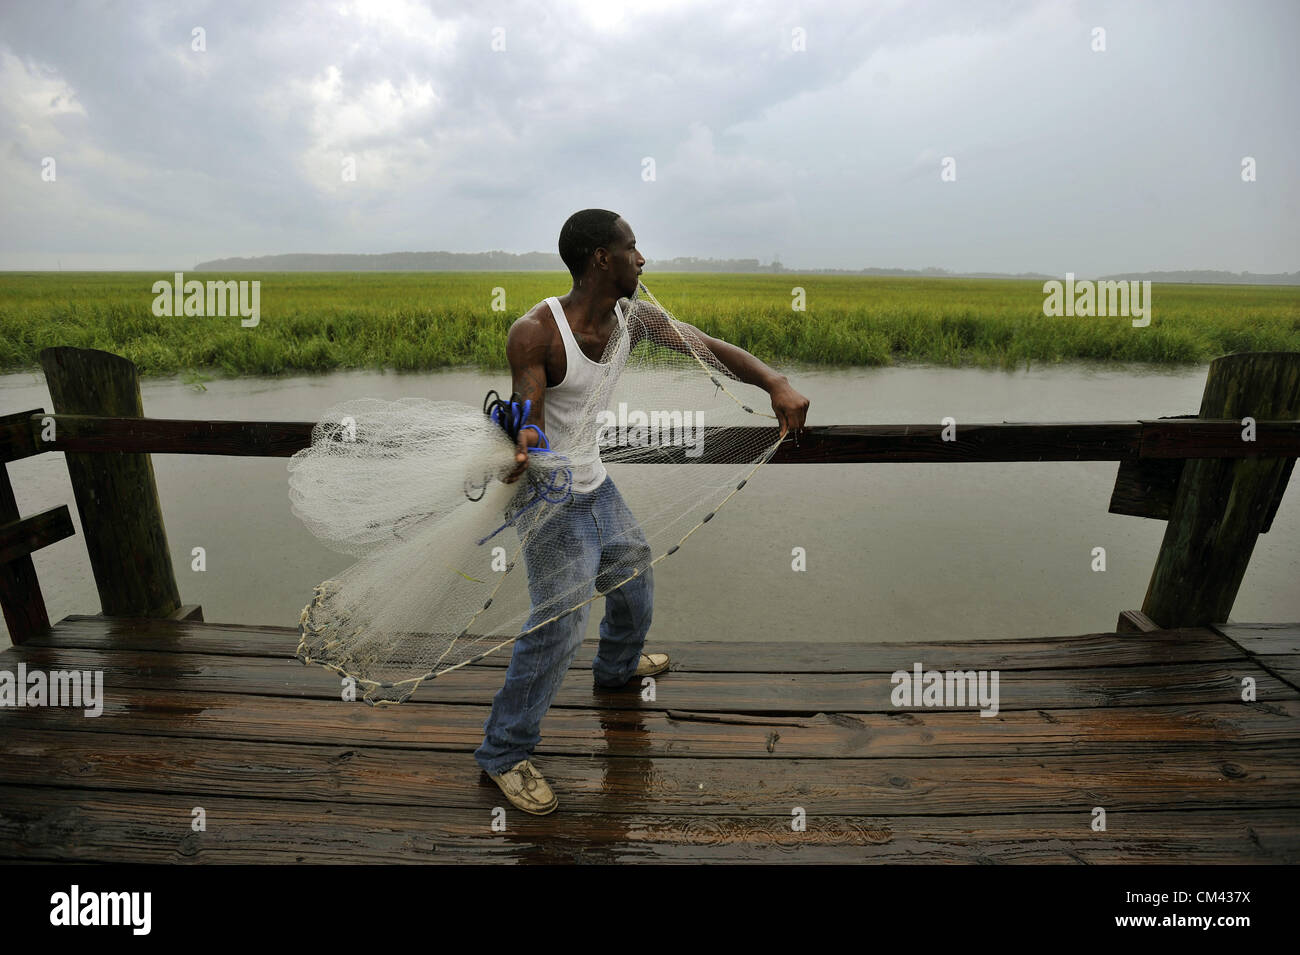 Aug. 23, 2012 - Sapelo Island, Georgia, U.S. -  Casting for bait off a state owned dock, BRANDON DIXON fishes the Stock Photo